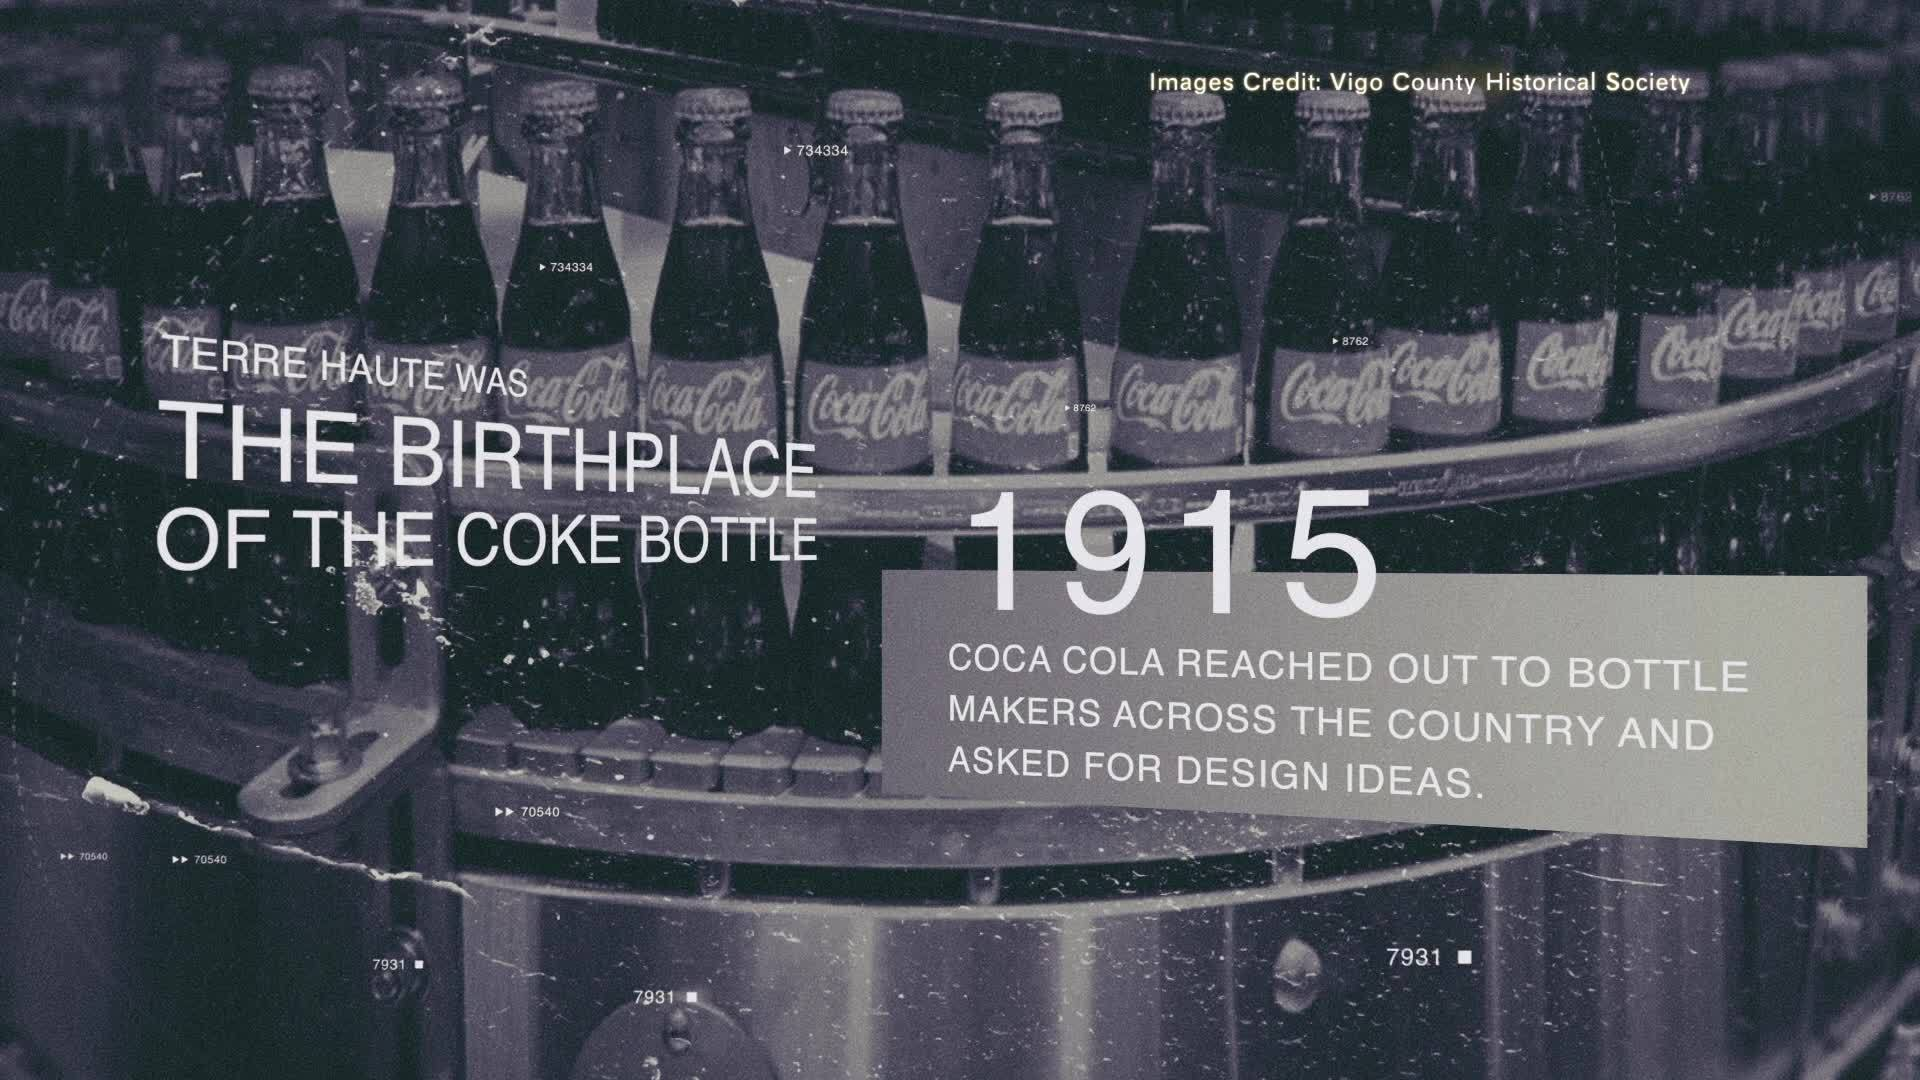 Birthplace of The Coke Bottle on Wabash Valley History